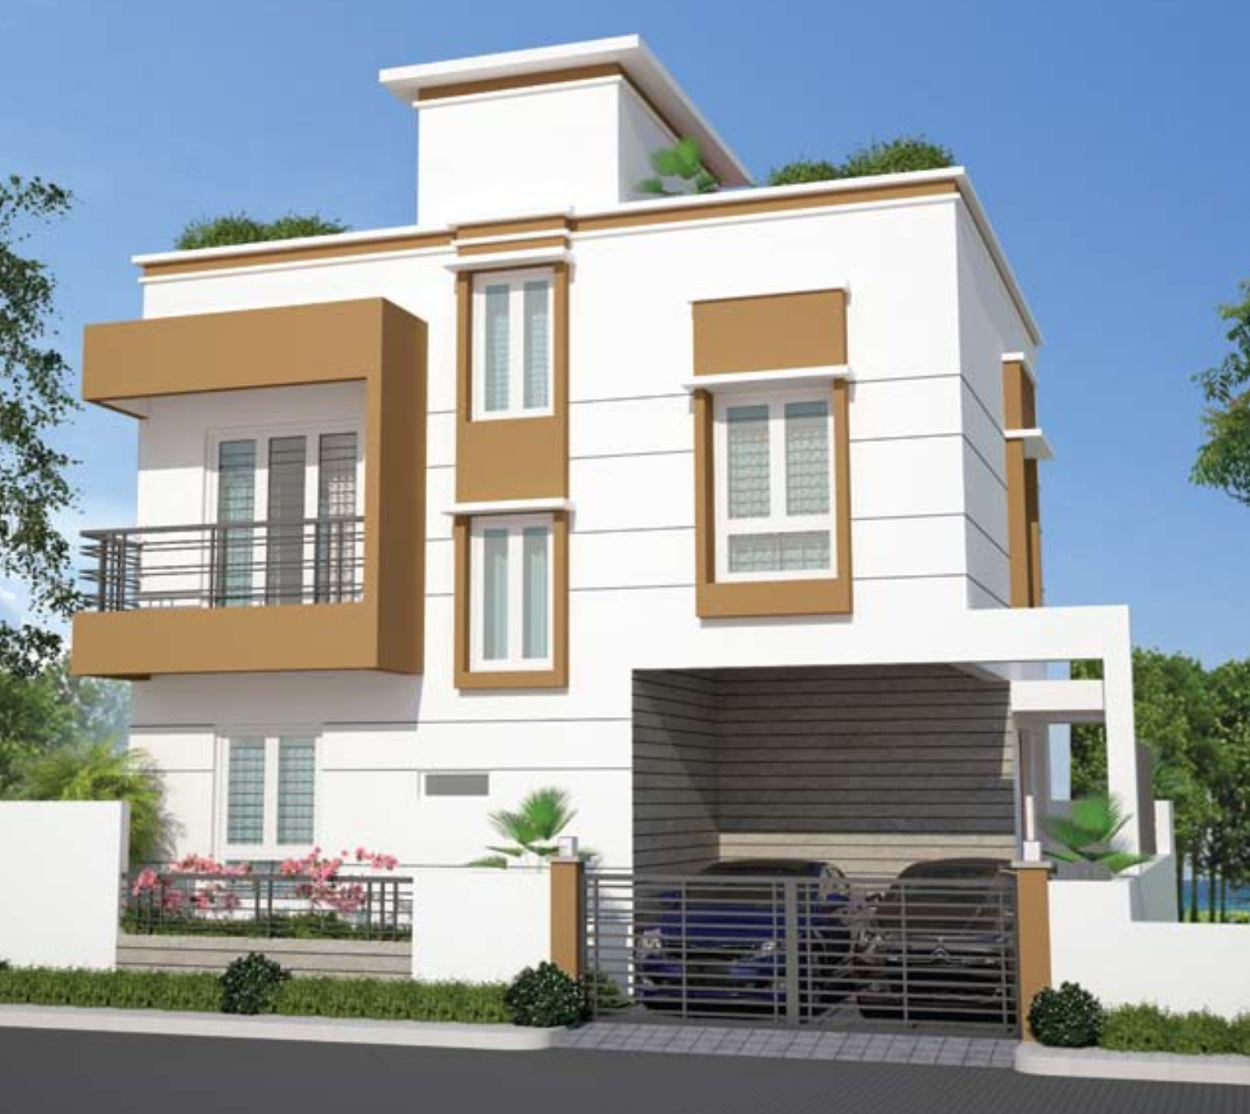 Wood Elevation : Sq ft bhk t villa for sale in my proptree rich